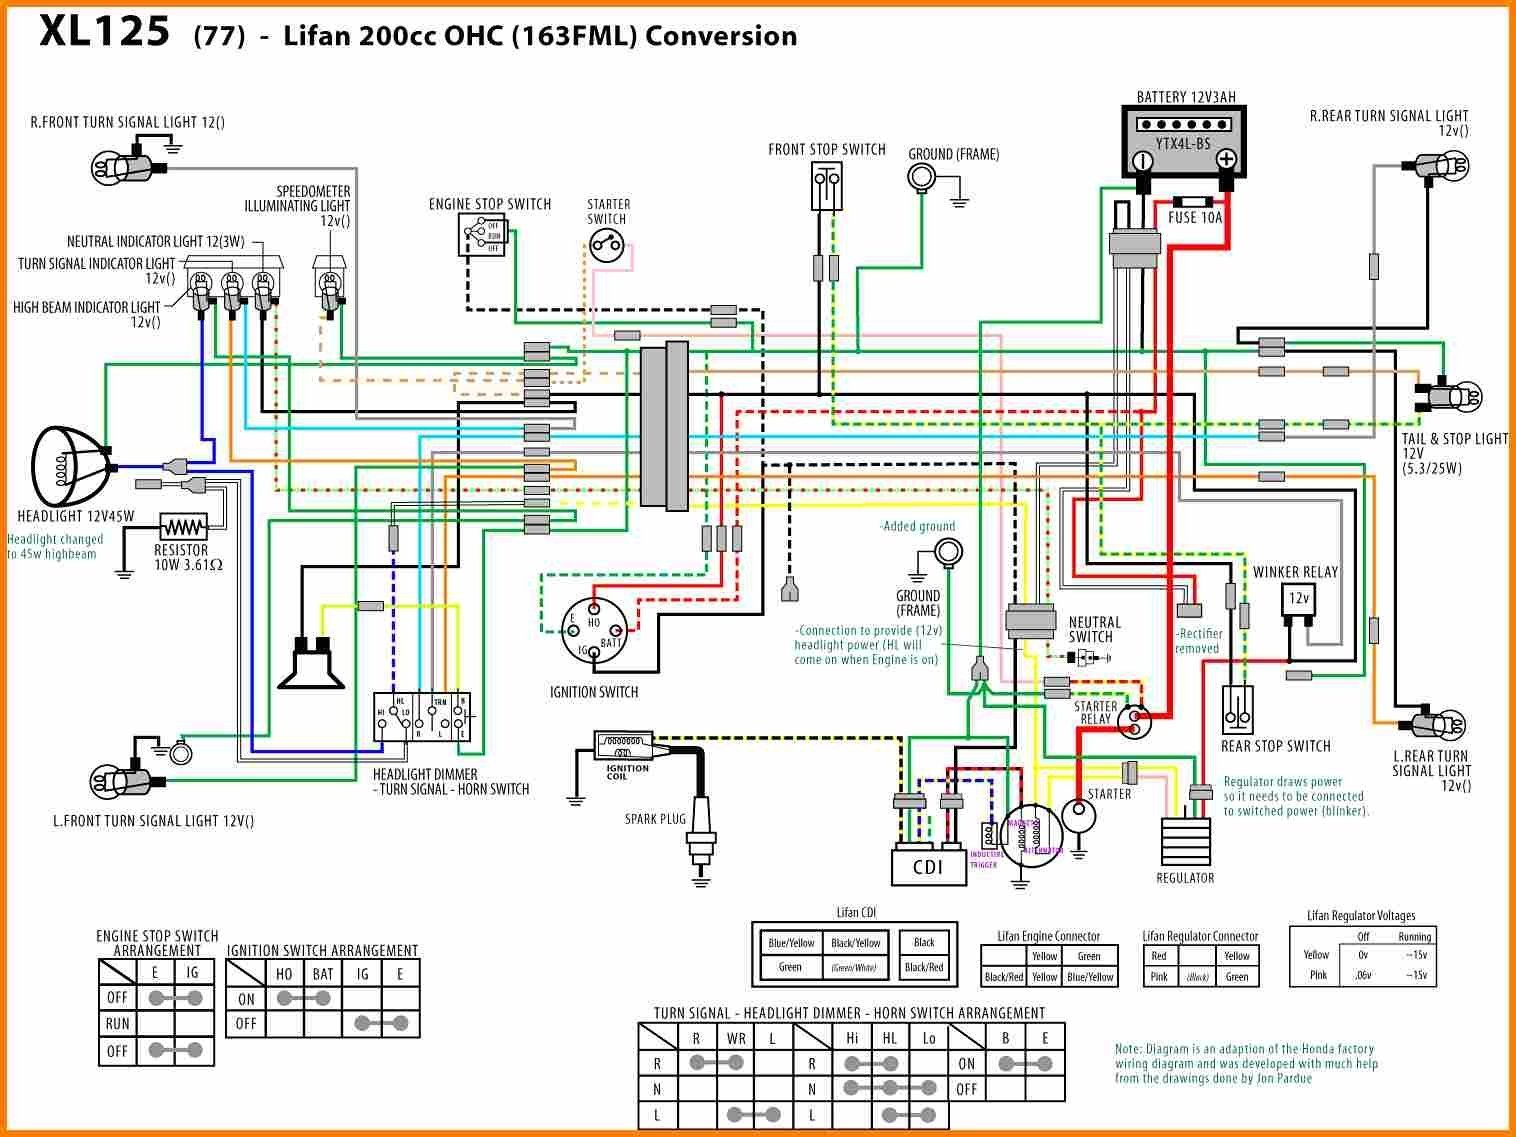 lifan 110cc engine diagram lifan 125cc wiring diagram wiring lifan 125cc wiring diagram for honda 50cc [ 1516 x 1137 Pixel ]